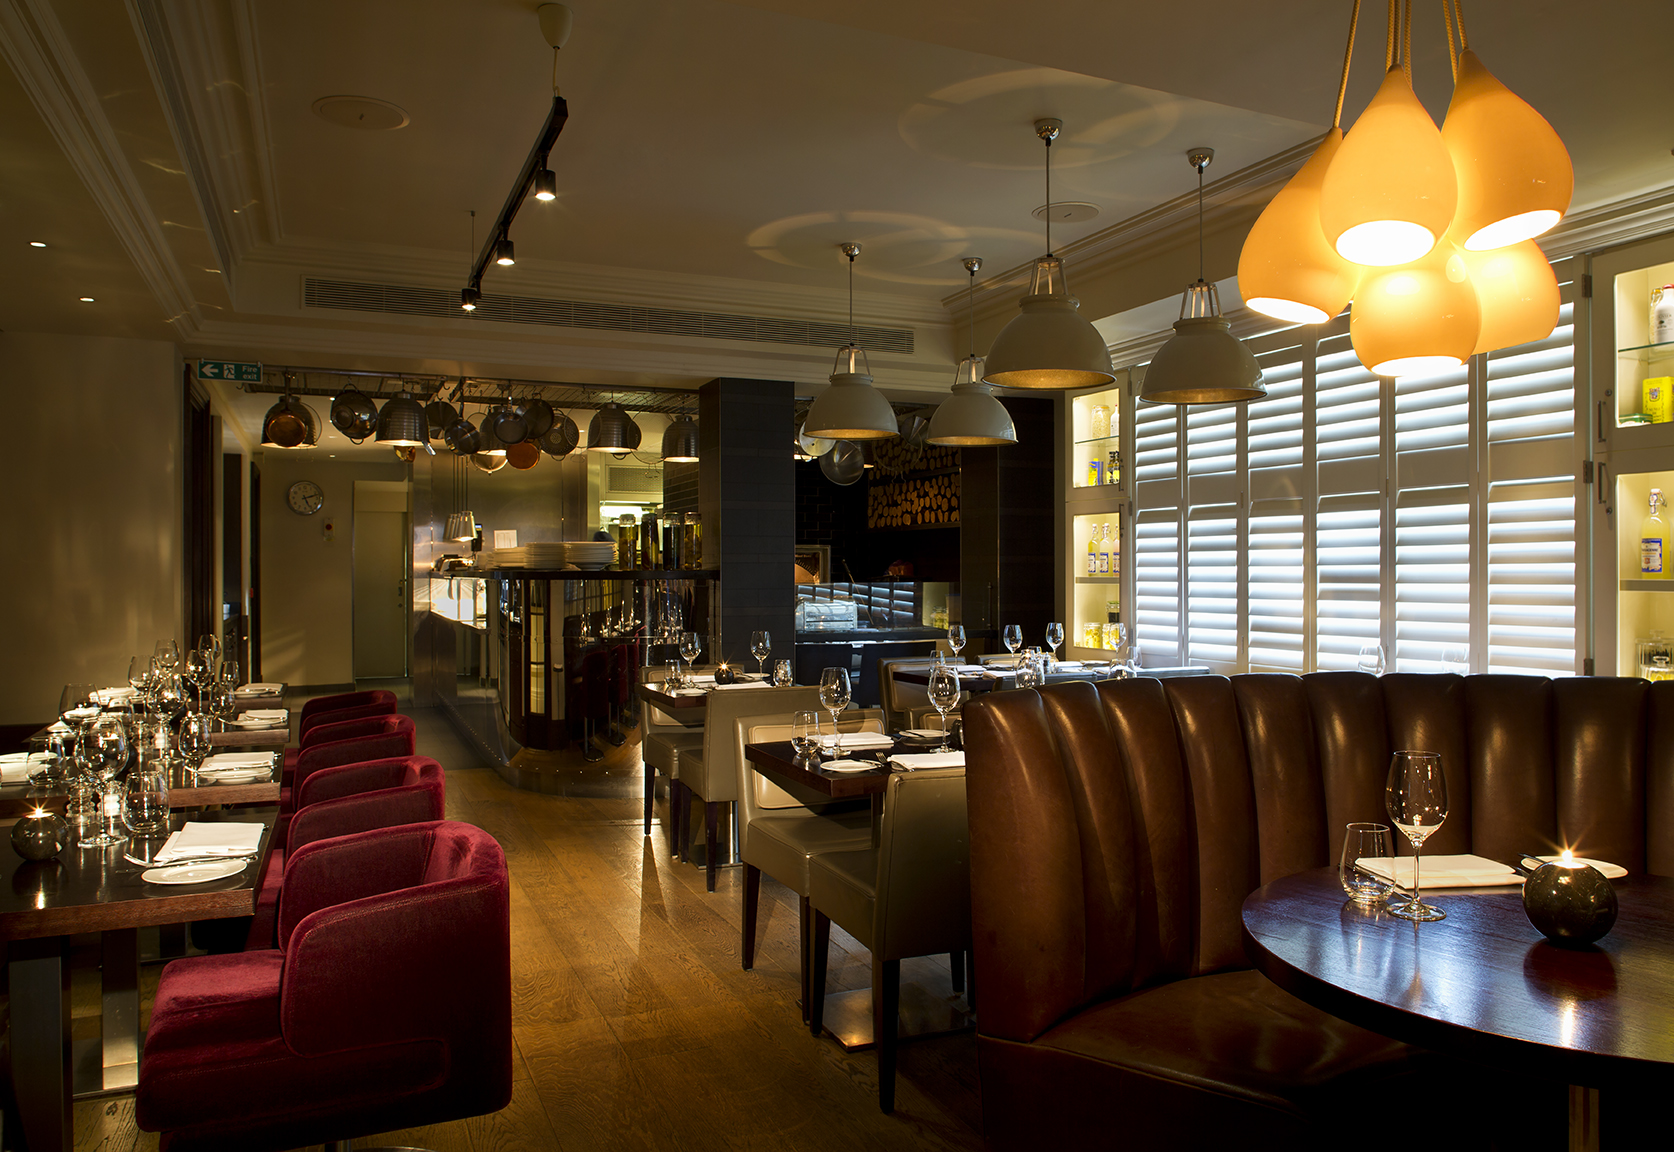 Hunter 486 at The Arch Hotel is opposite Madonna's London home